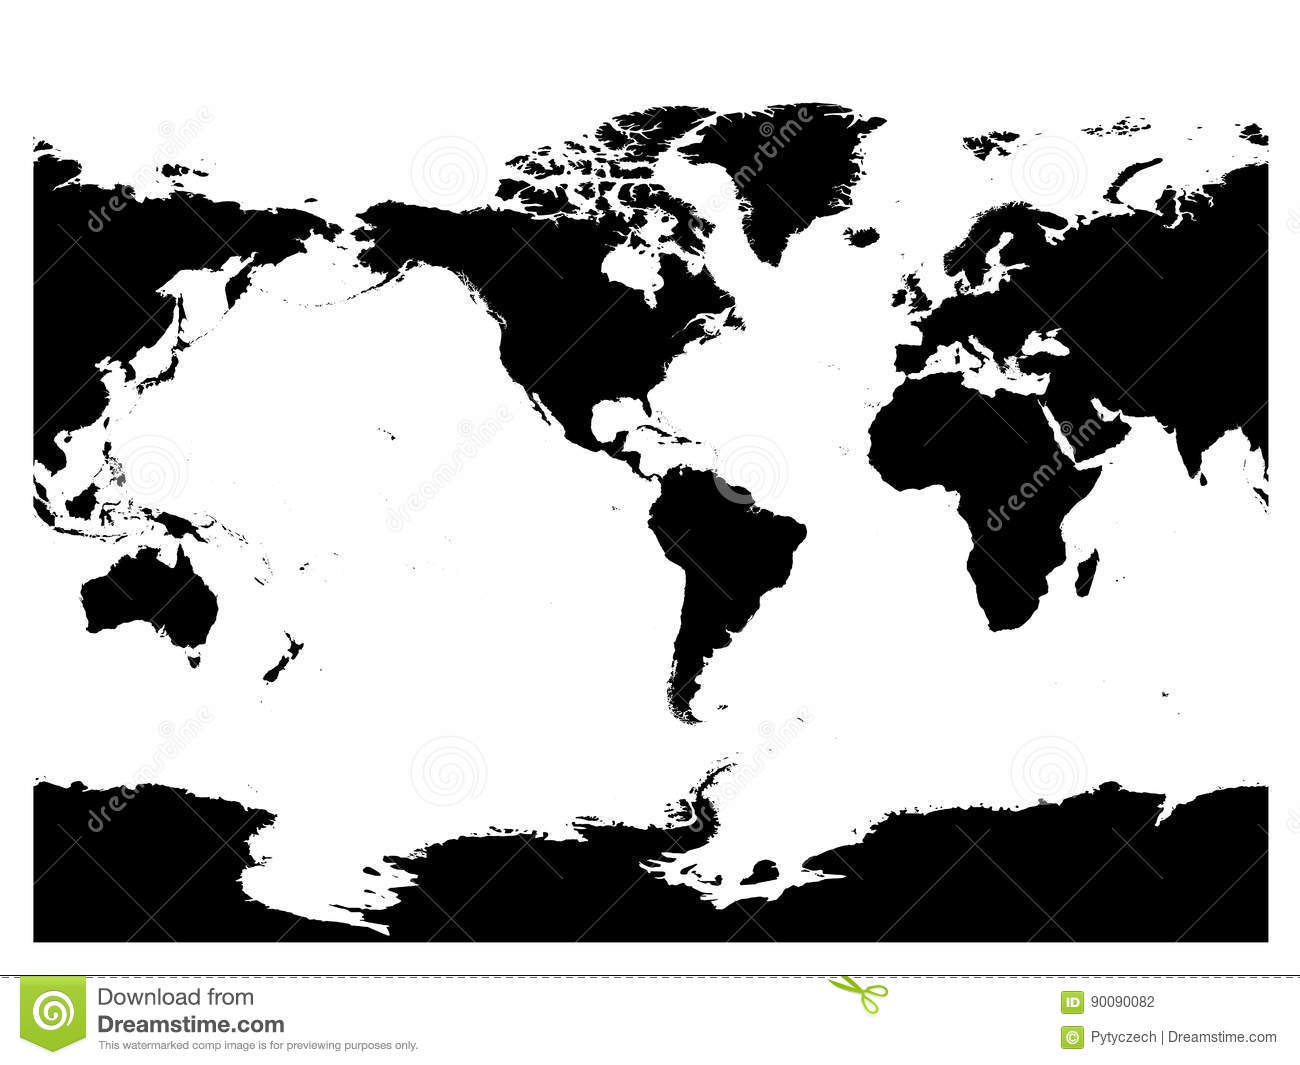 America Centered World Map High Detail Black Silhouette On White